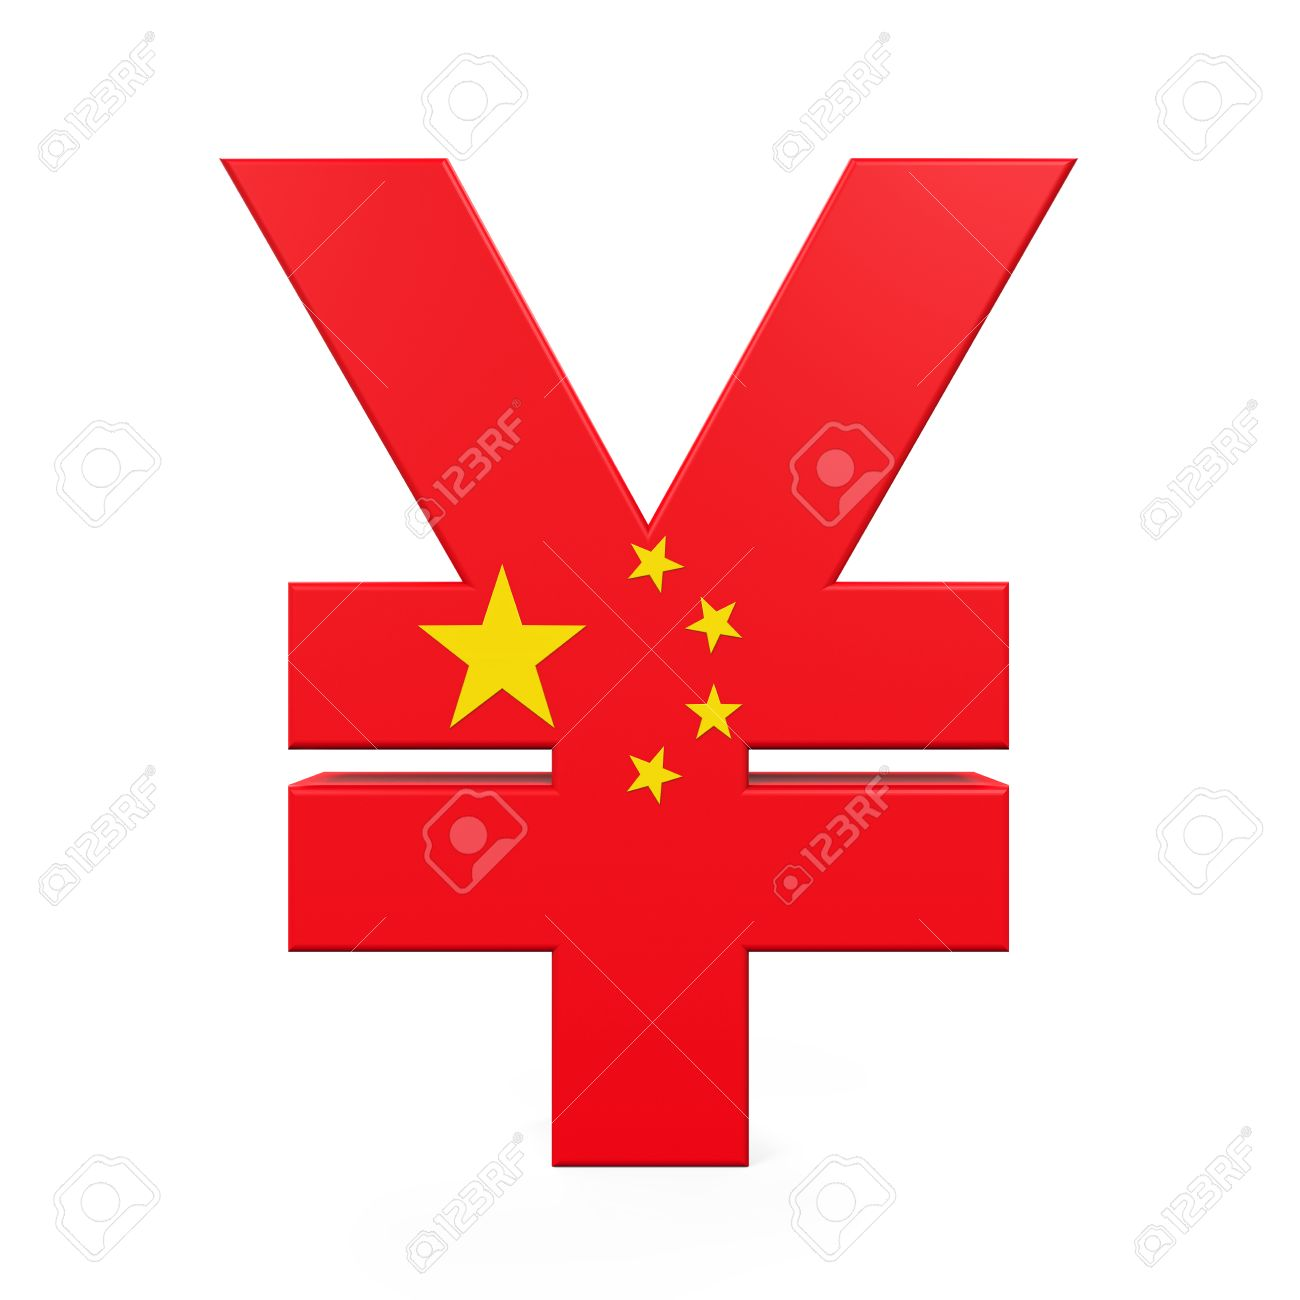 Chinese yuan symbol stock photo picture and royalty free image chinese yuan symbol biocorpaavc Gallery